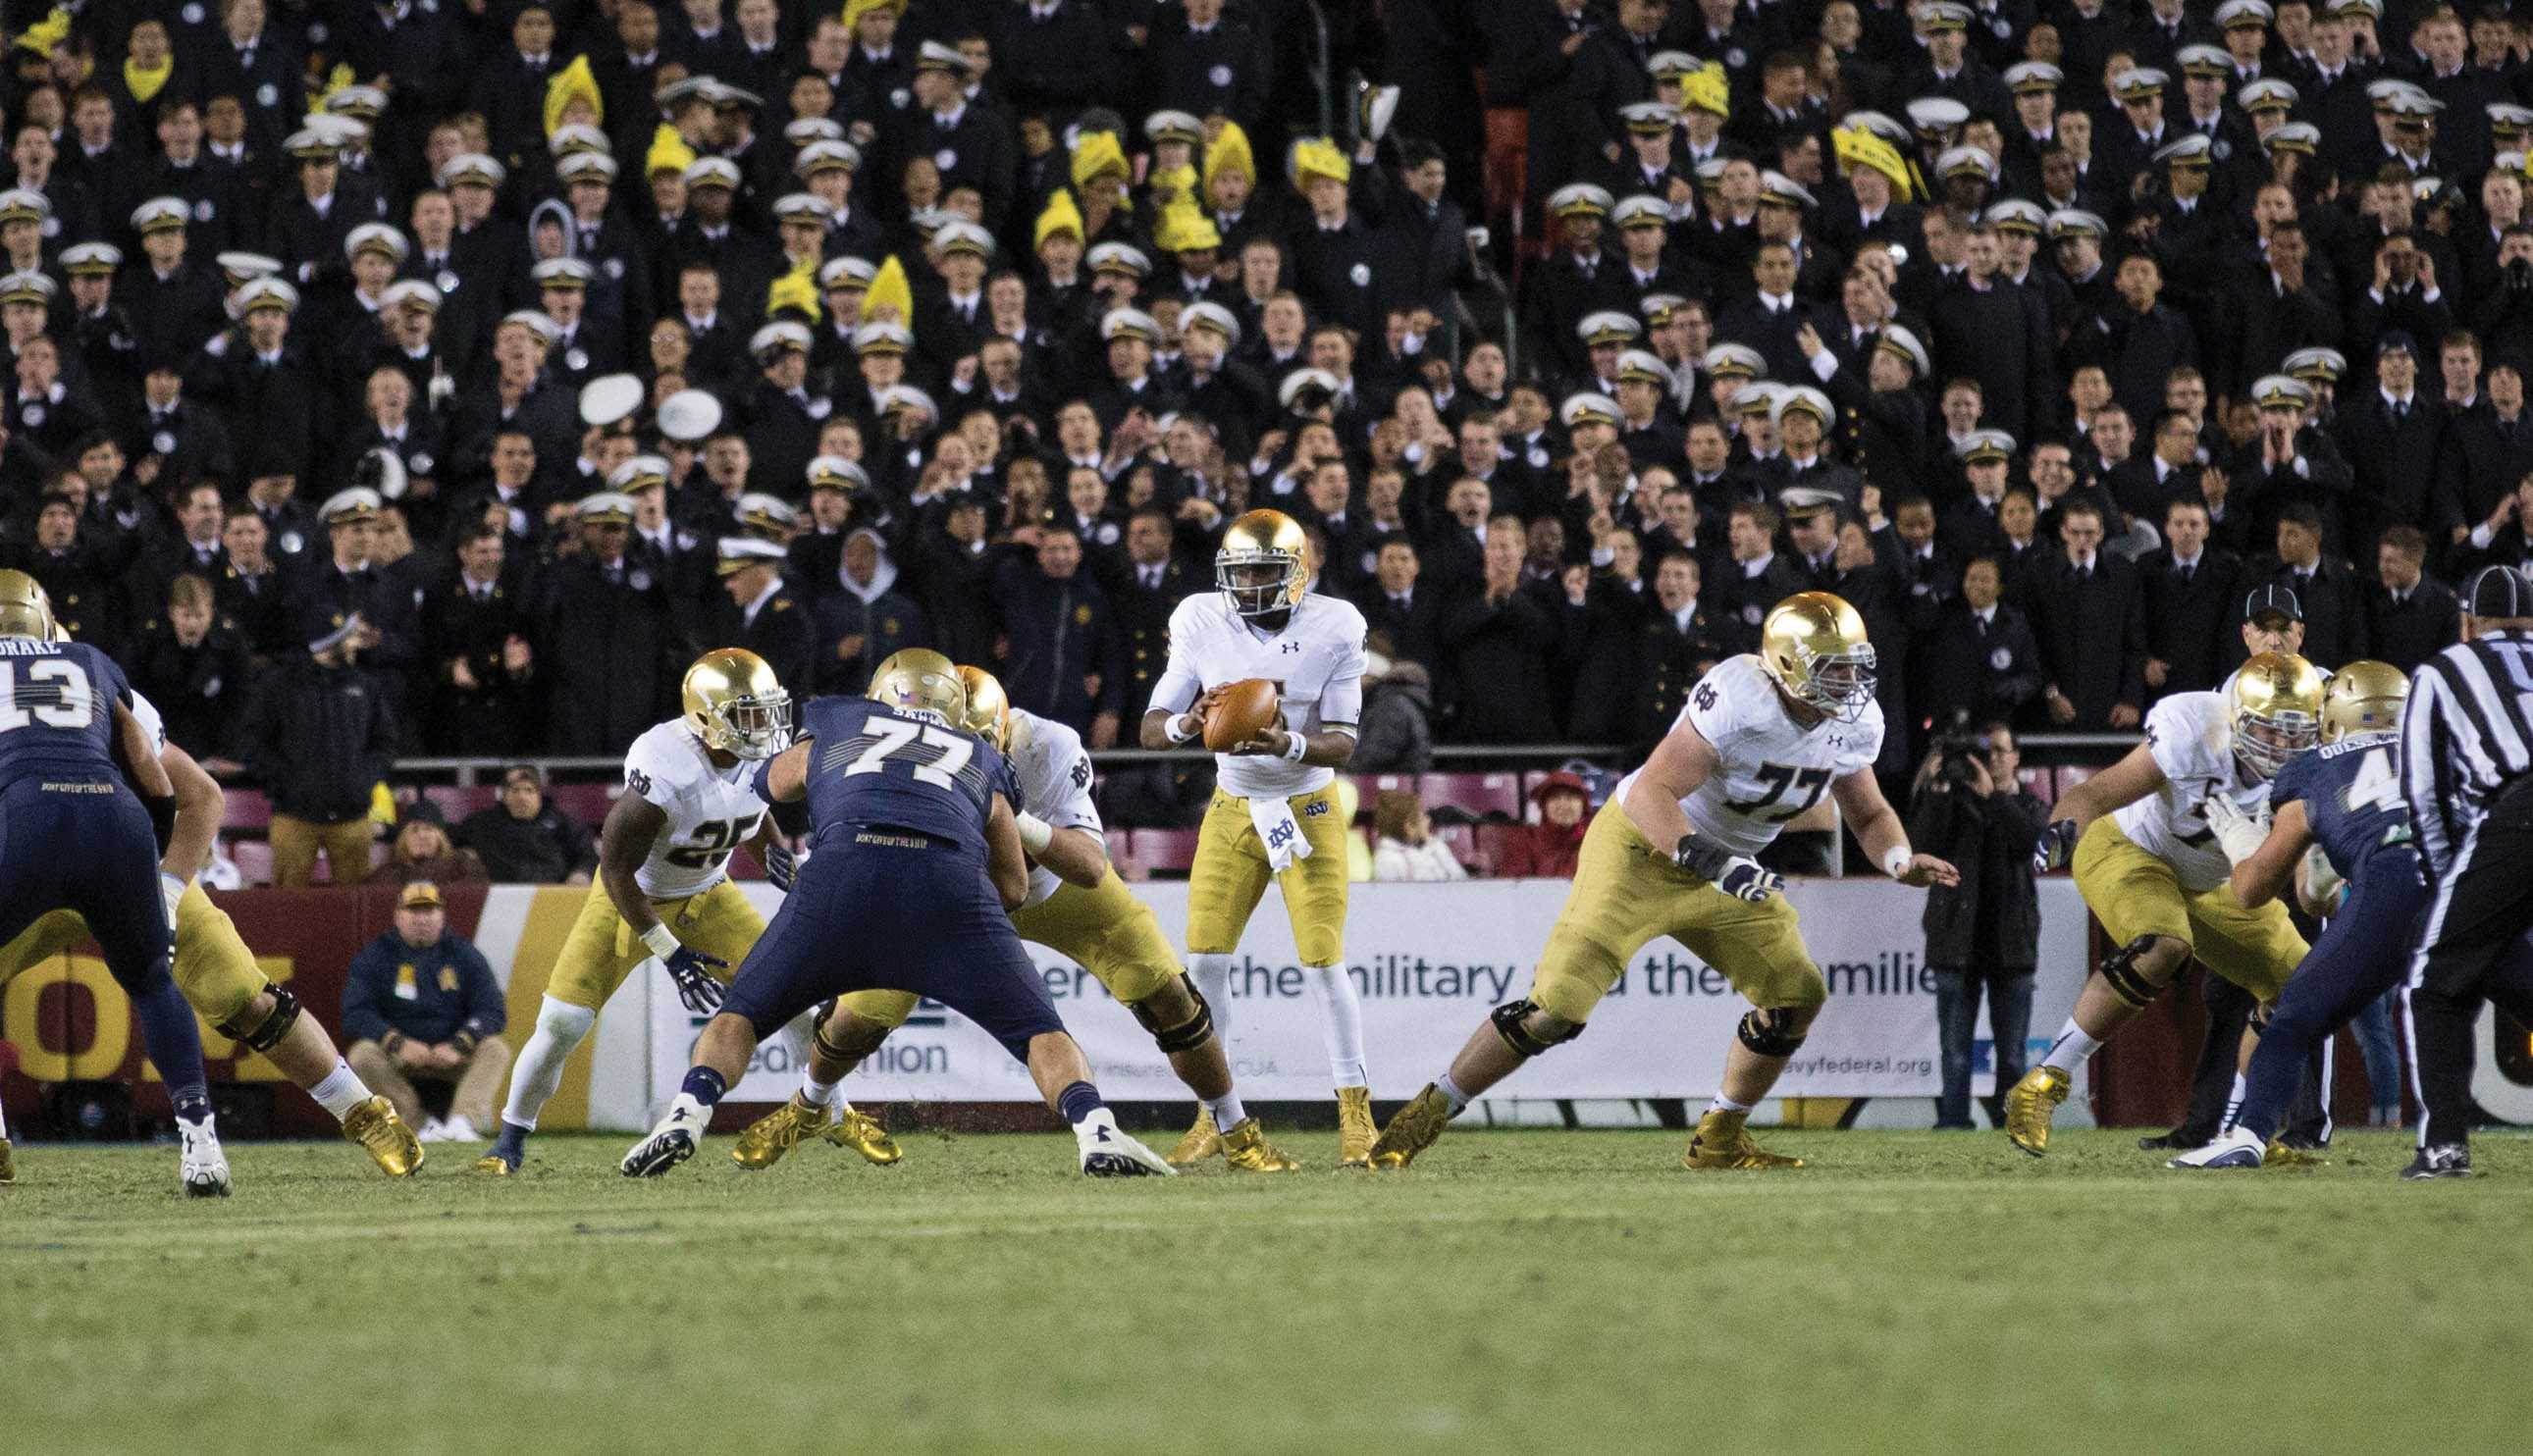 Notre Dame quarterback Everett Golson drops back to pass during the team's Nov. 1 game against Navy. The senior has completed 61.7 percent of his passes for 8.25 yards per attempt this season.